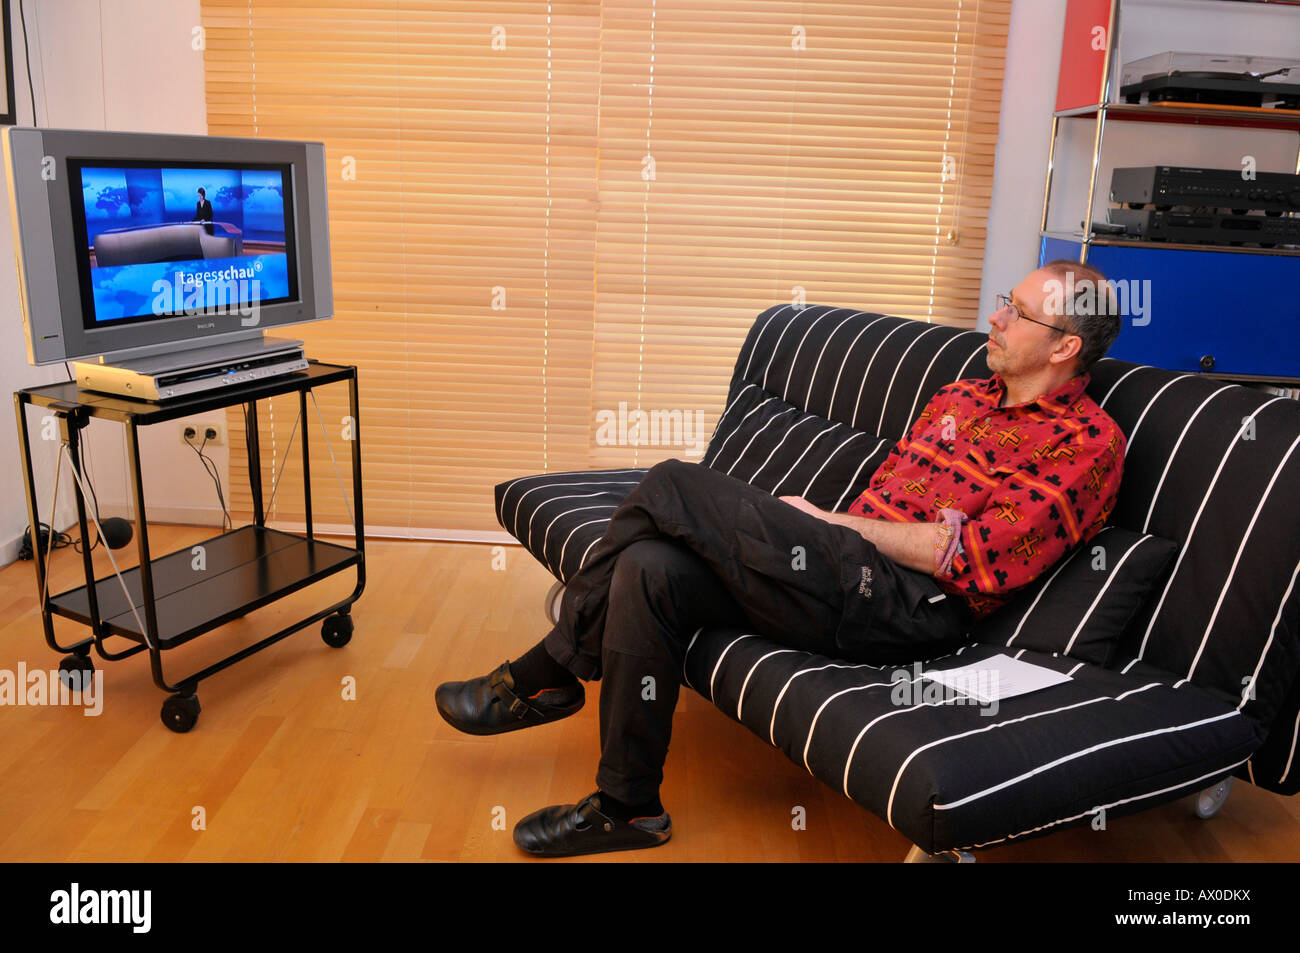 Man Sitting On Couch Watching TV Stock Photo: 16688125 - Alamy